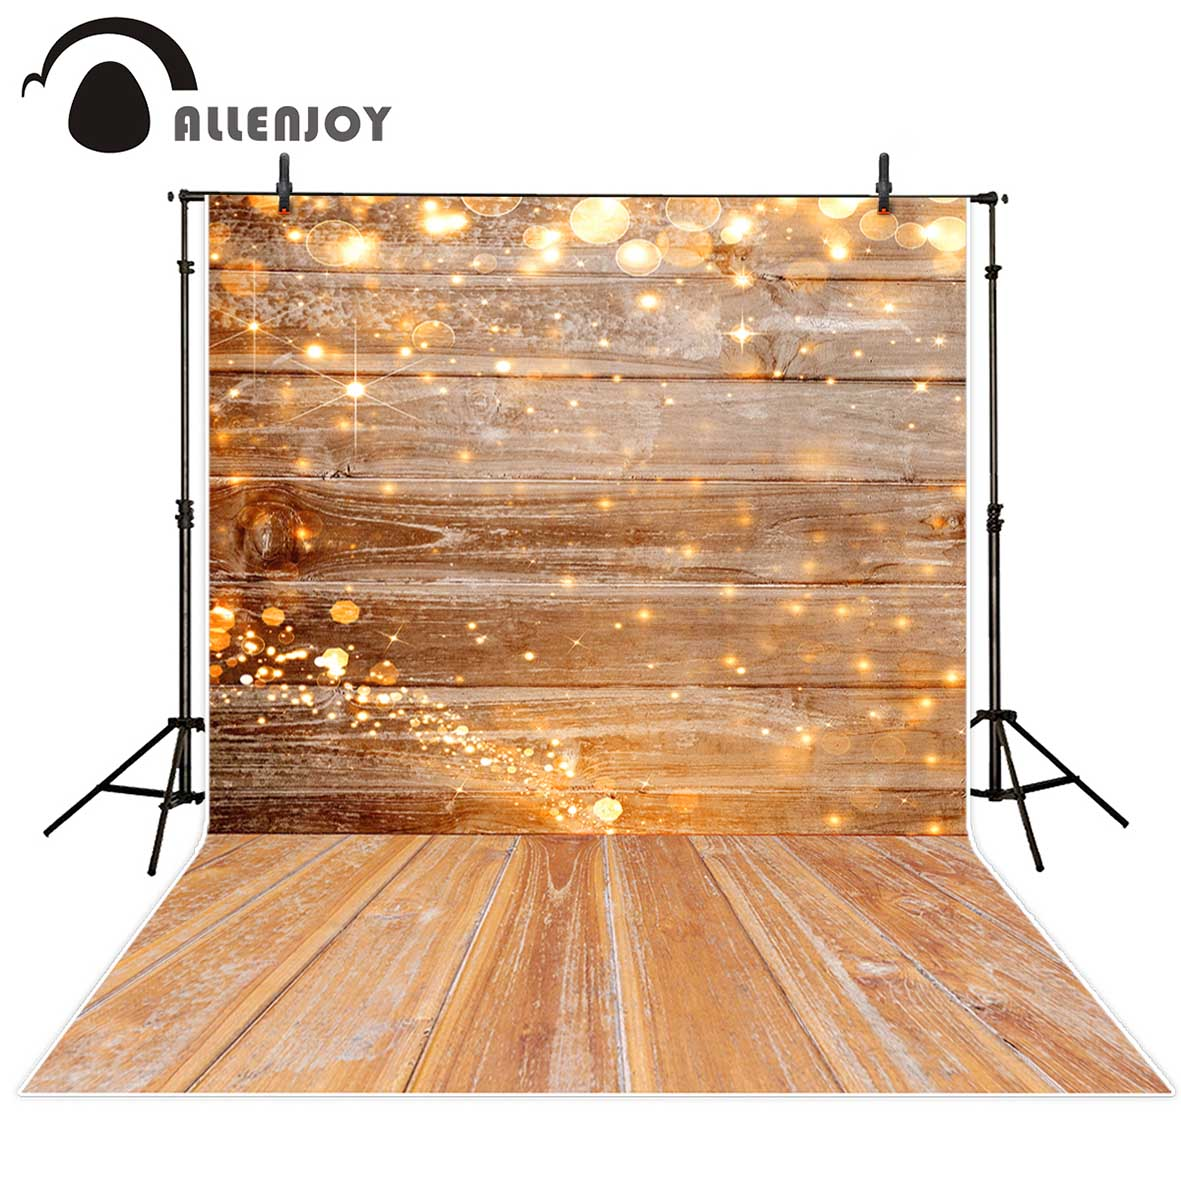 Allenjoy photography backdrop yellow halo wood christmas decor background photobooth photo studio decoration photo shoot allenjoy christmas kitchen background wood for photo studio child cook backdrop photobooth photocall photography photo shoot